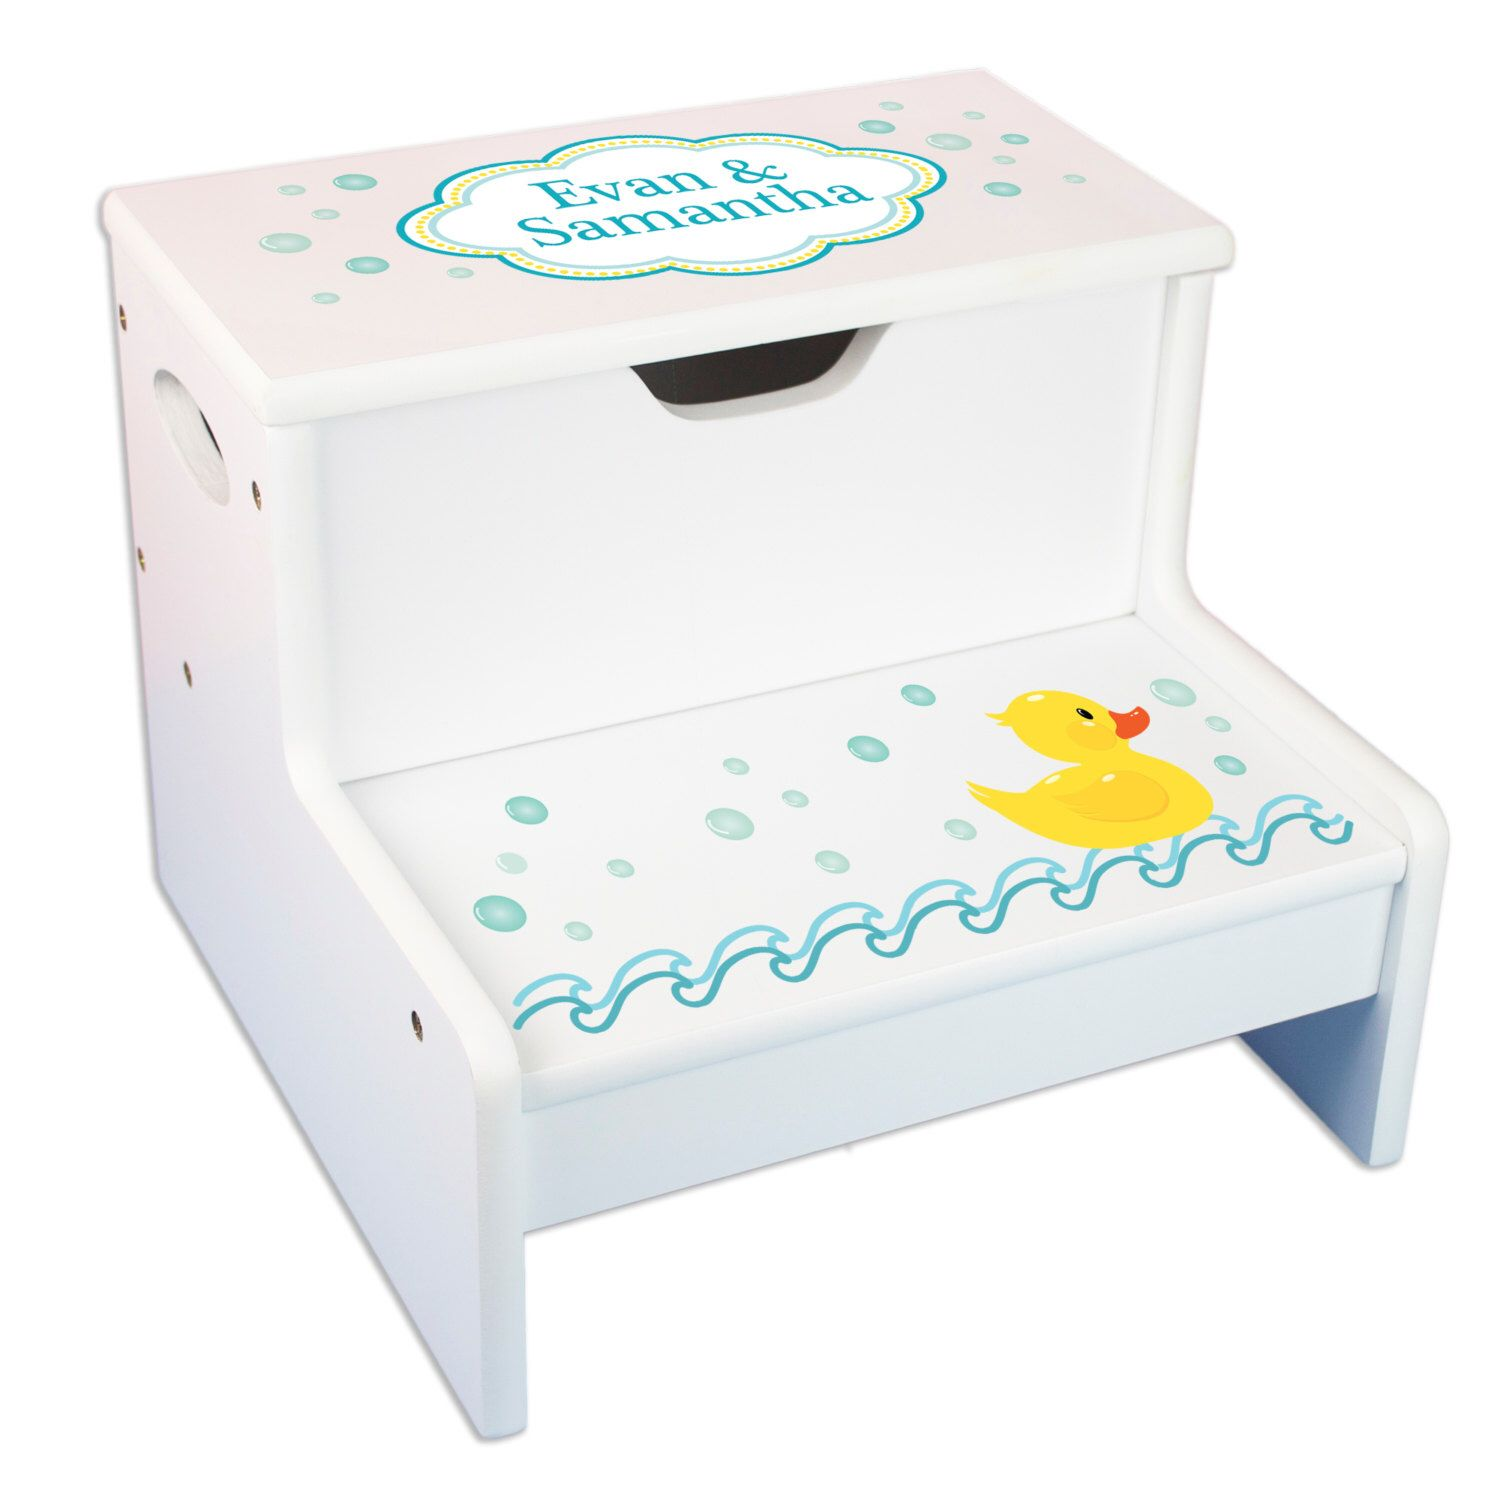 Personalized Bath Stool Rubber Ducky Step Stool with Storage for ...